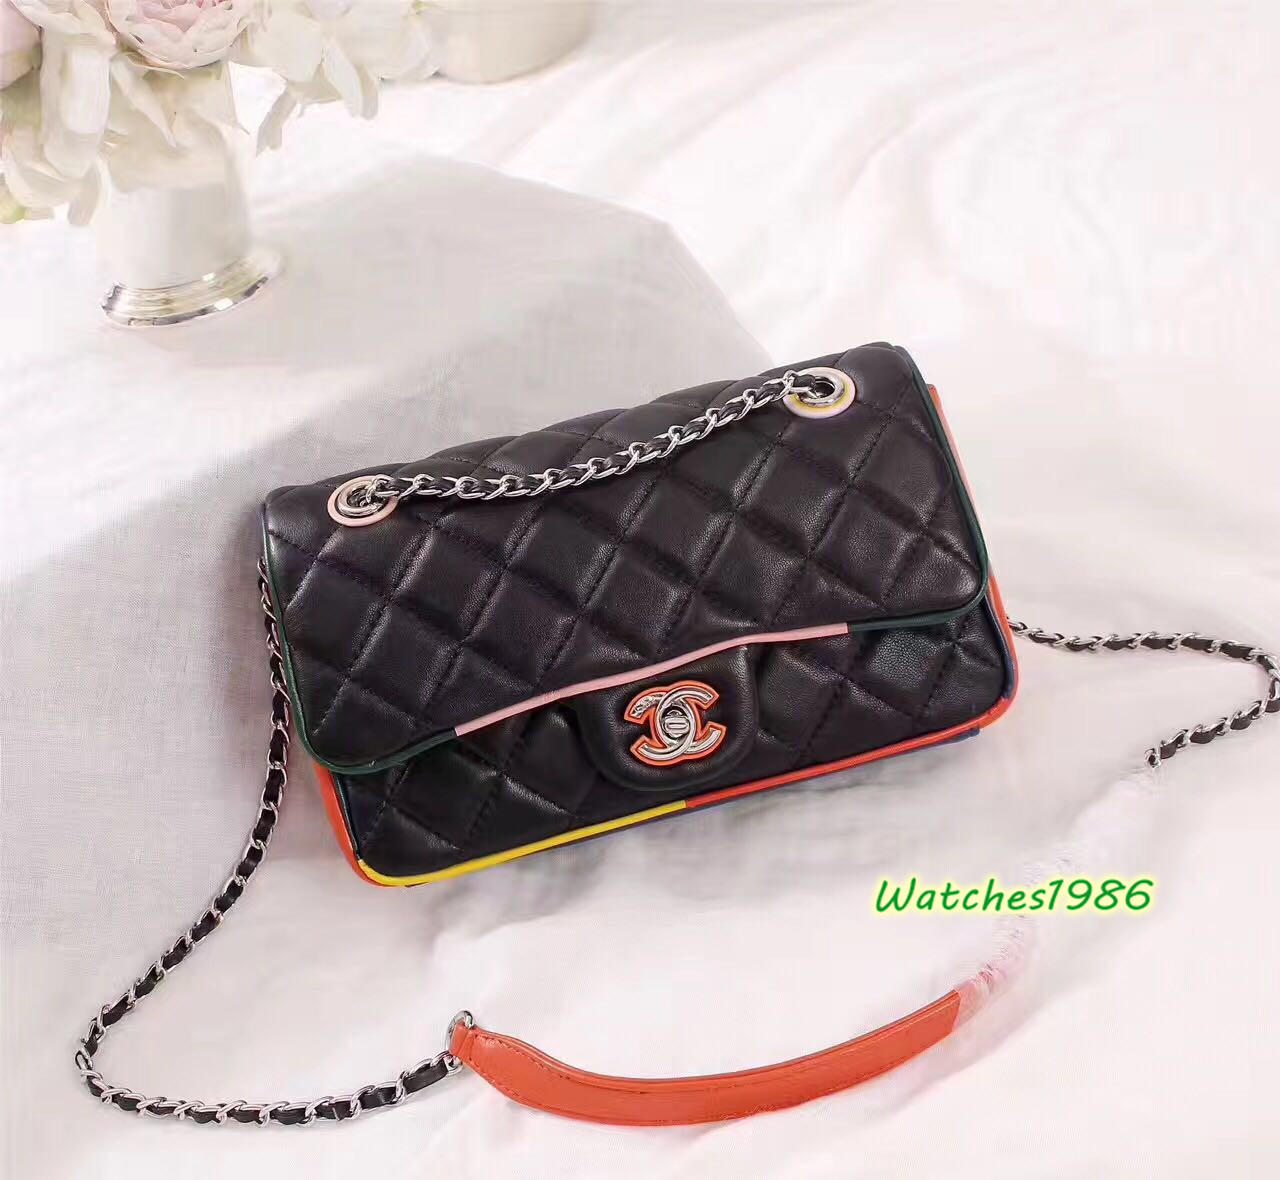 2017 latest Chanel purse replica handbag online for sale